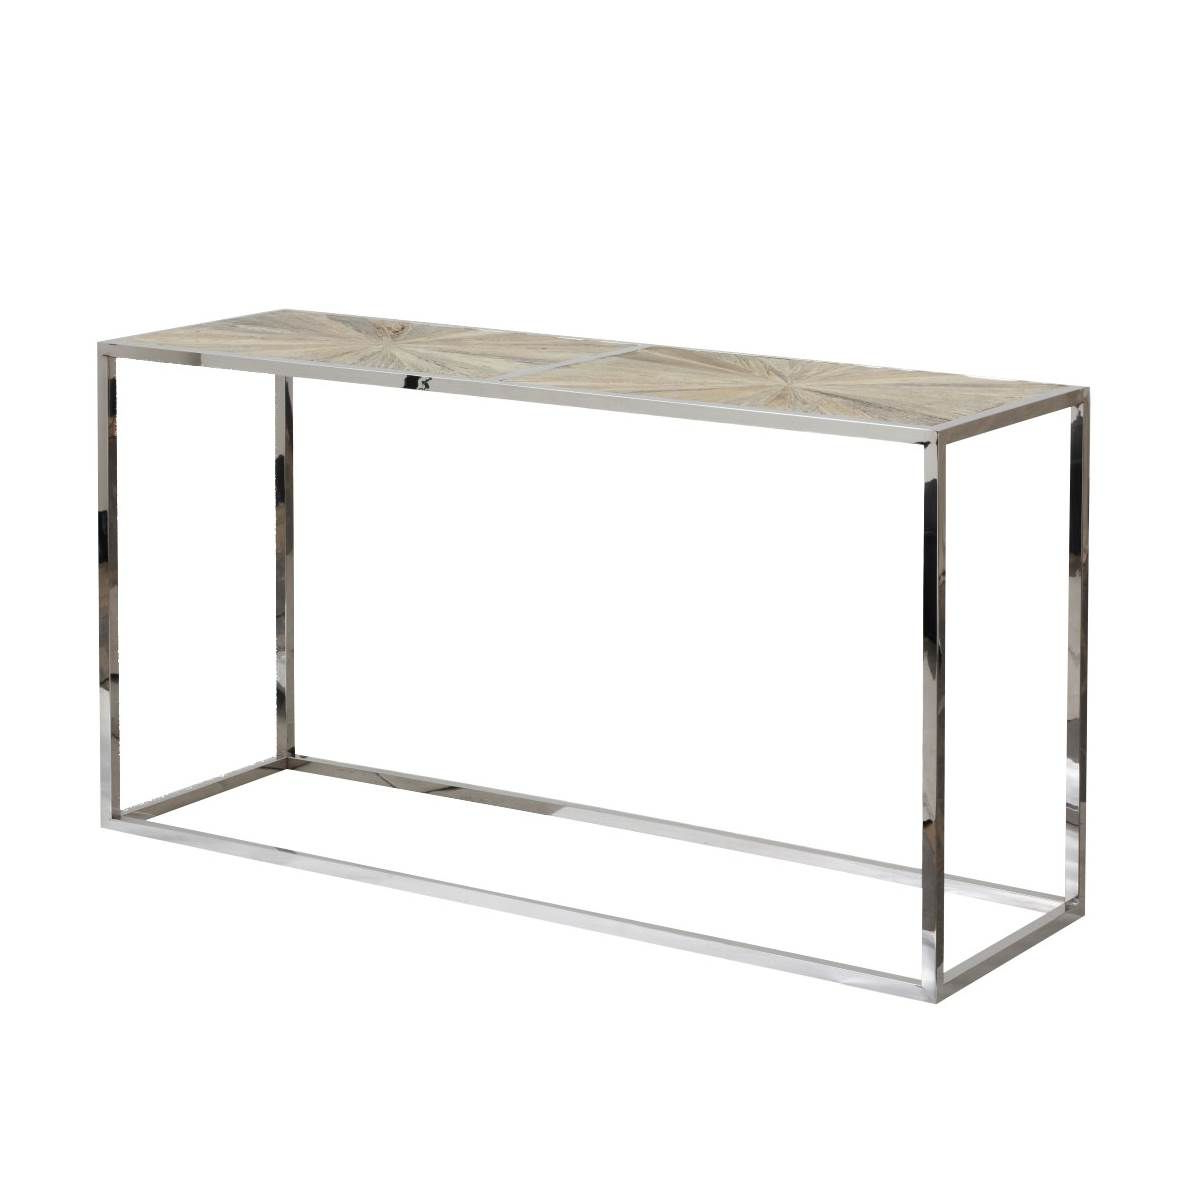 Parquet Console Table | Marshall | Pinterest With Parsons Clear Glass Top & Brass Base 48X16 Console Tables (Gallery 11 of 20)